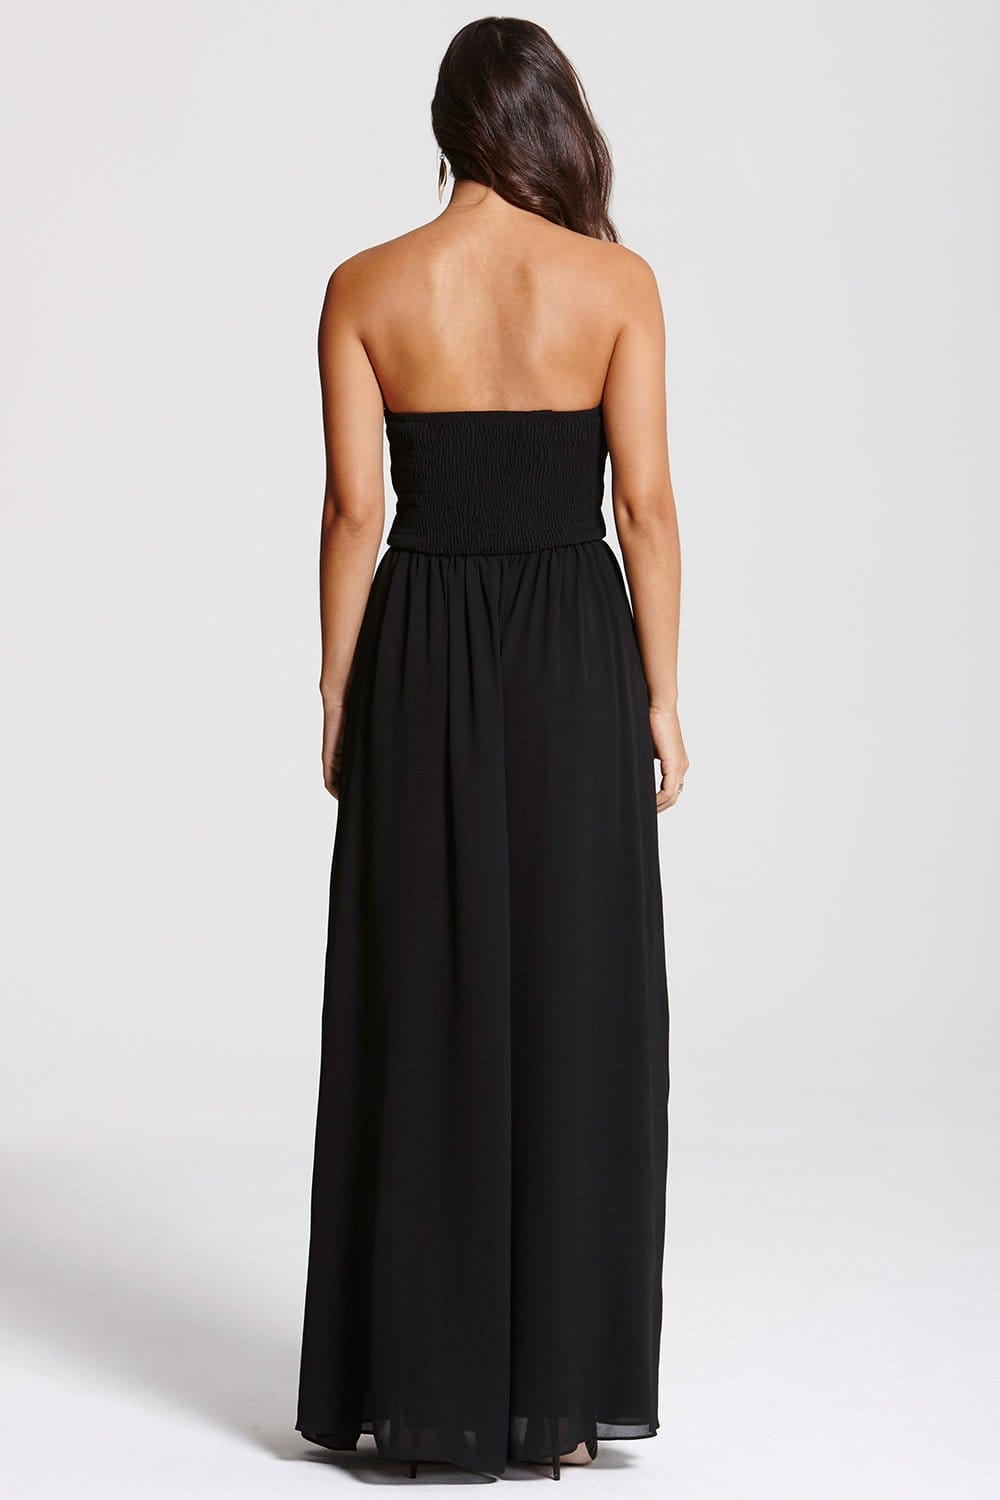 Black Embellished Maxi Dress From Little Mistress Uk